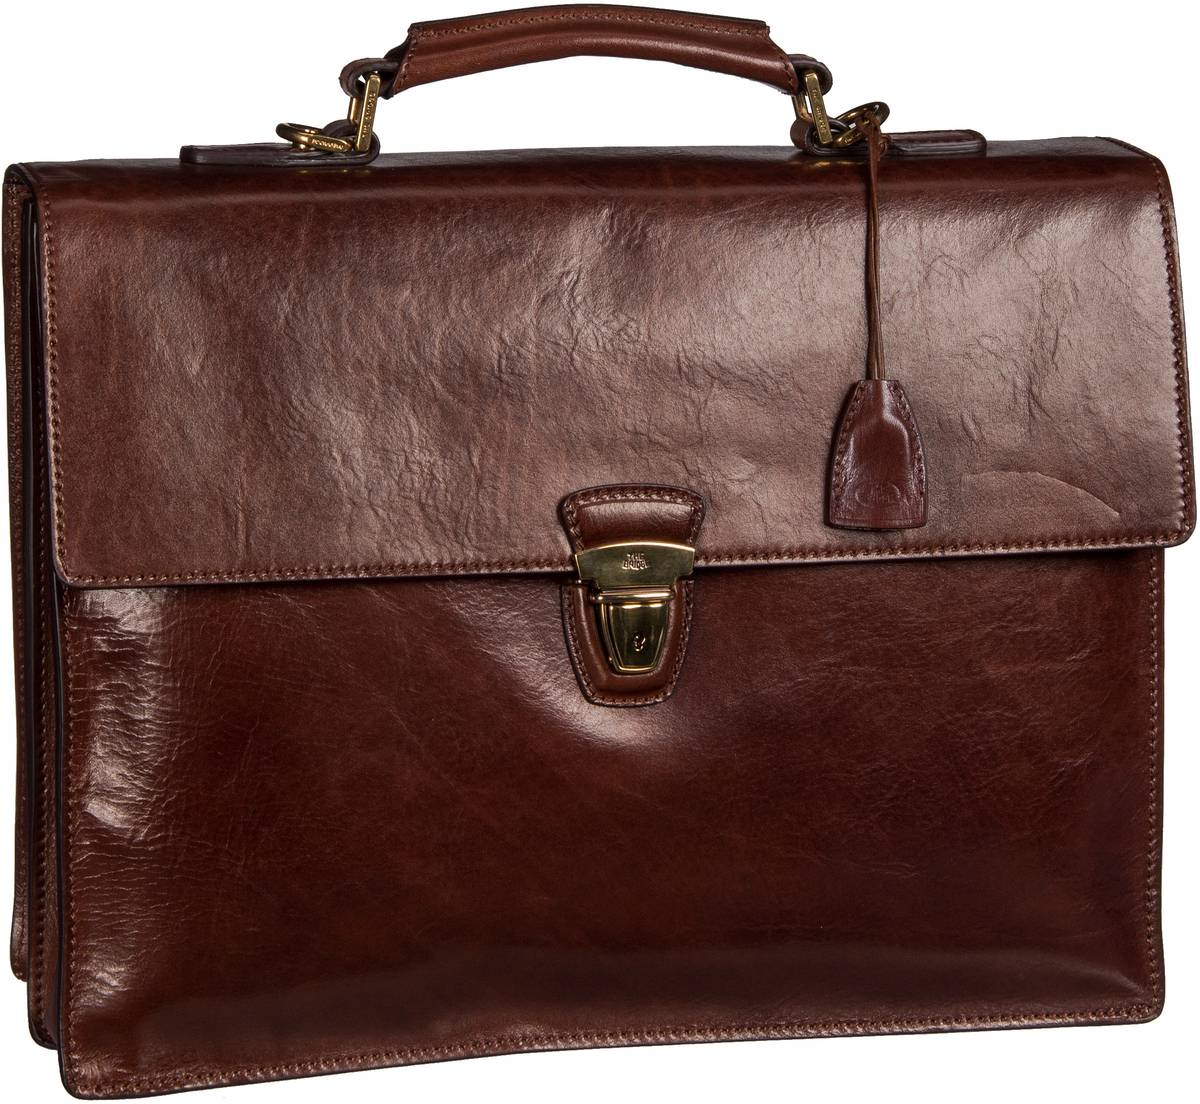 Story Uomo Business Ledertasche Braun